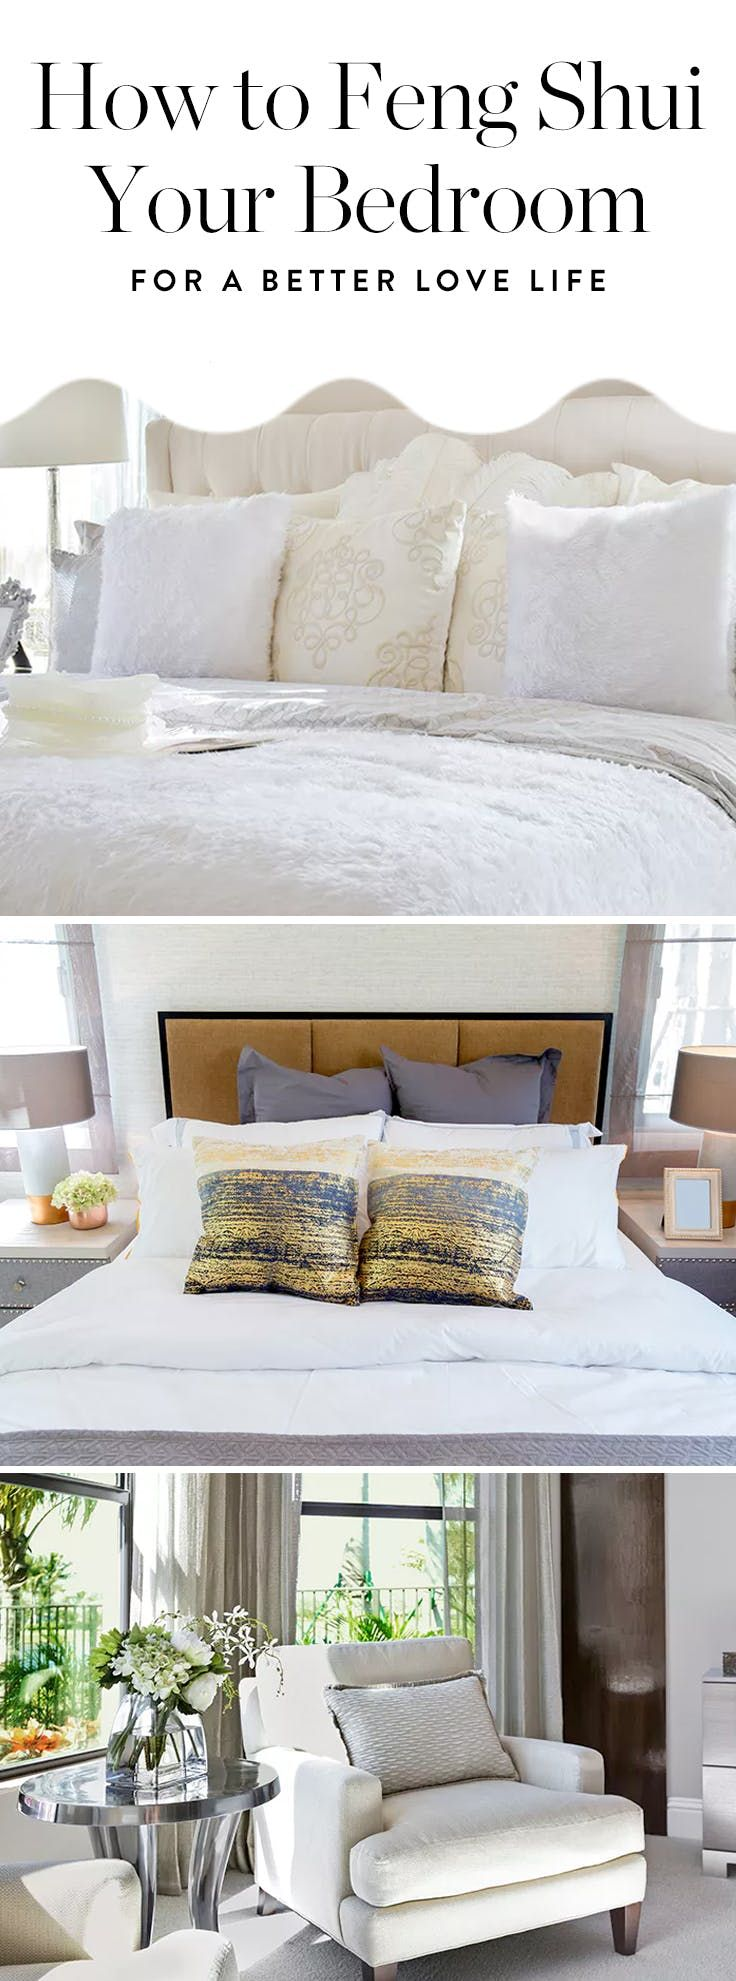 Peachy How To Feng Shui Your Bedroom For A Better Love Life Home Interior Design Ideas Gresisoteloinfo